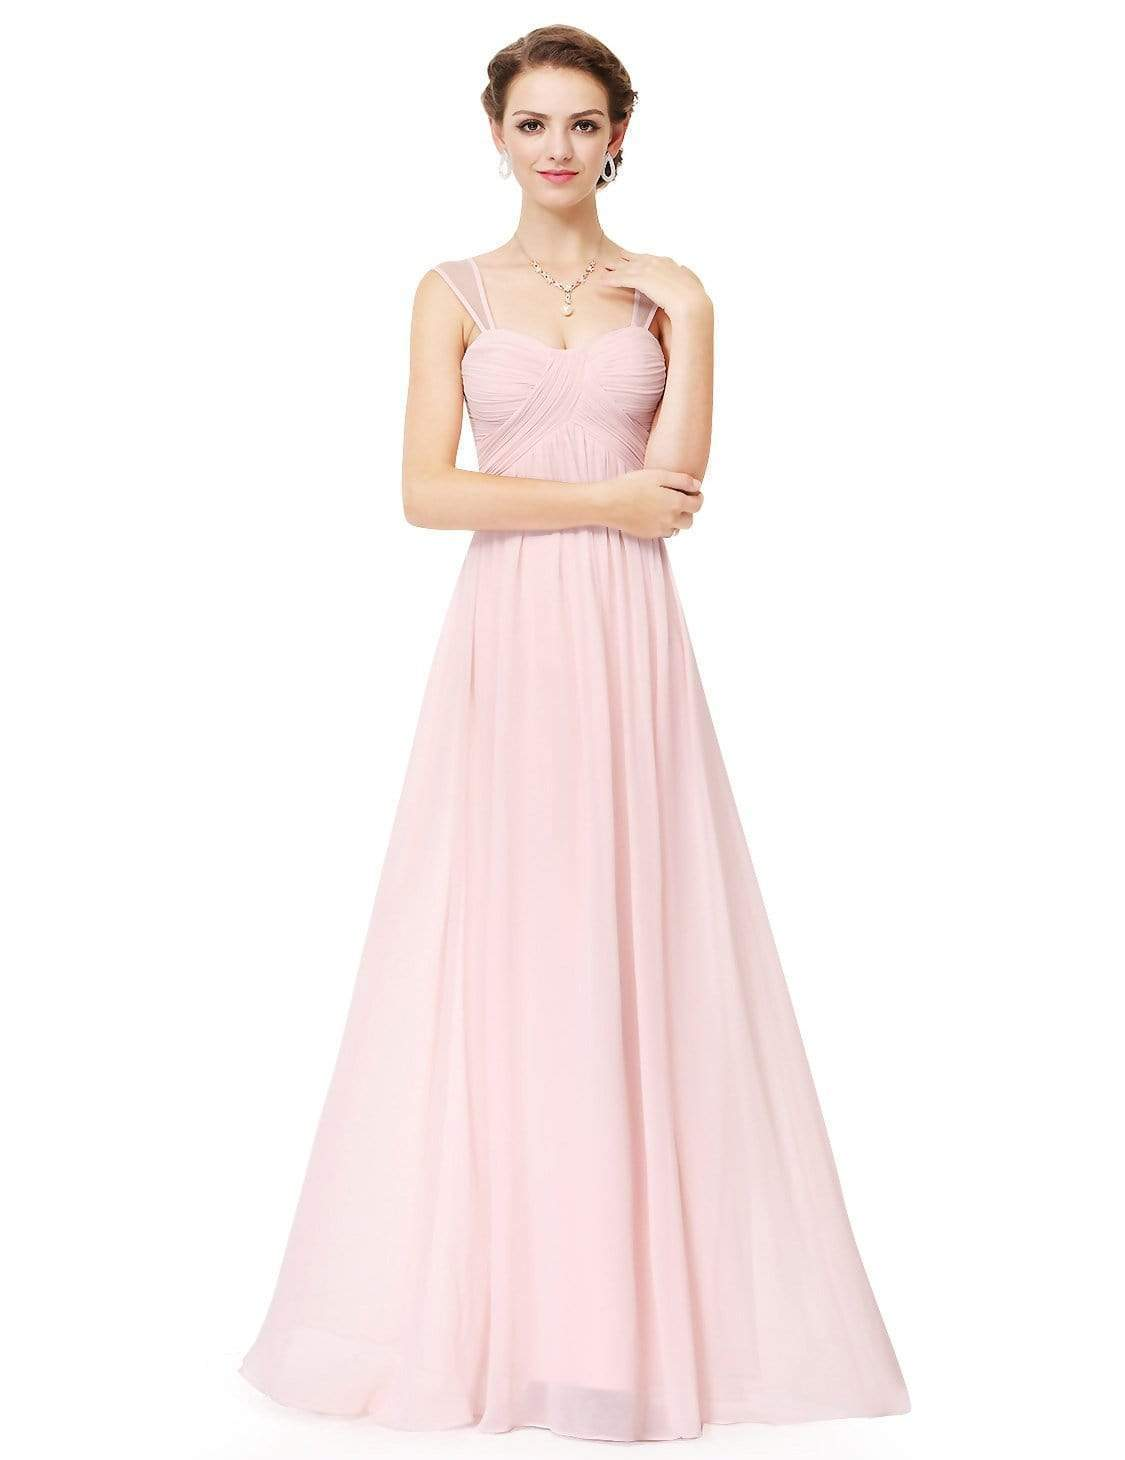 ceb0c3cfe4b0 Elegant Long Chiffon Bridesmaid Dress with Corset Back |Ever-Pretty ...